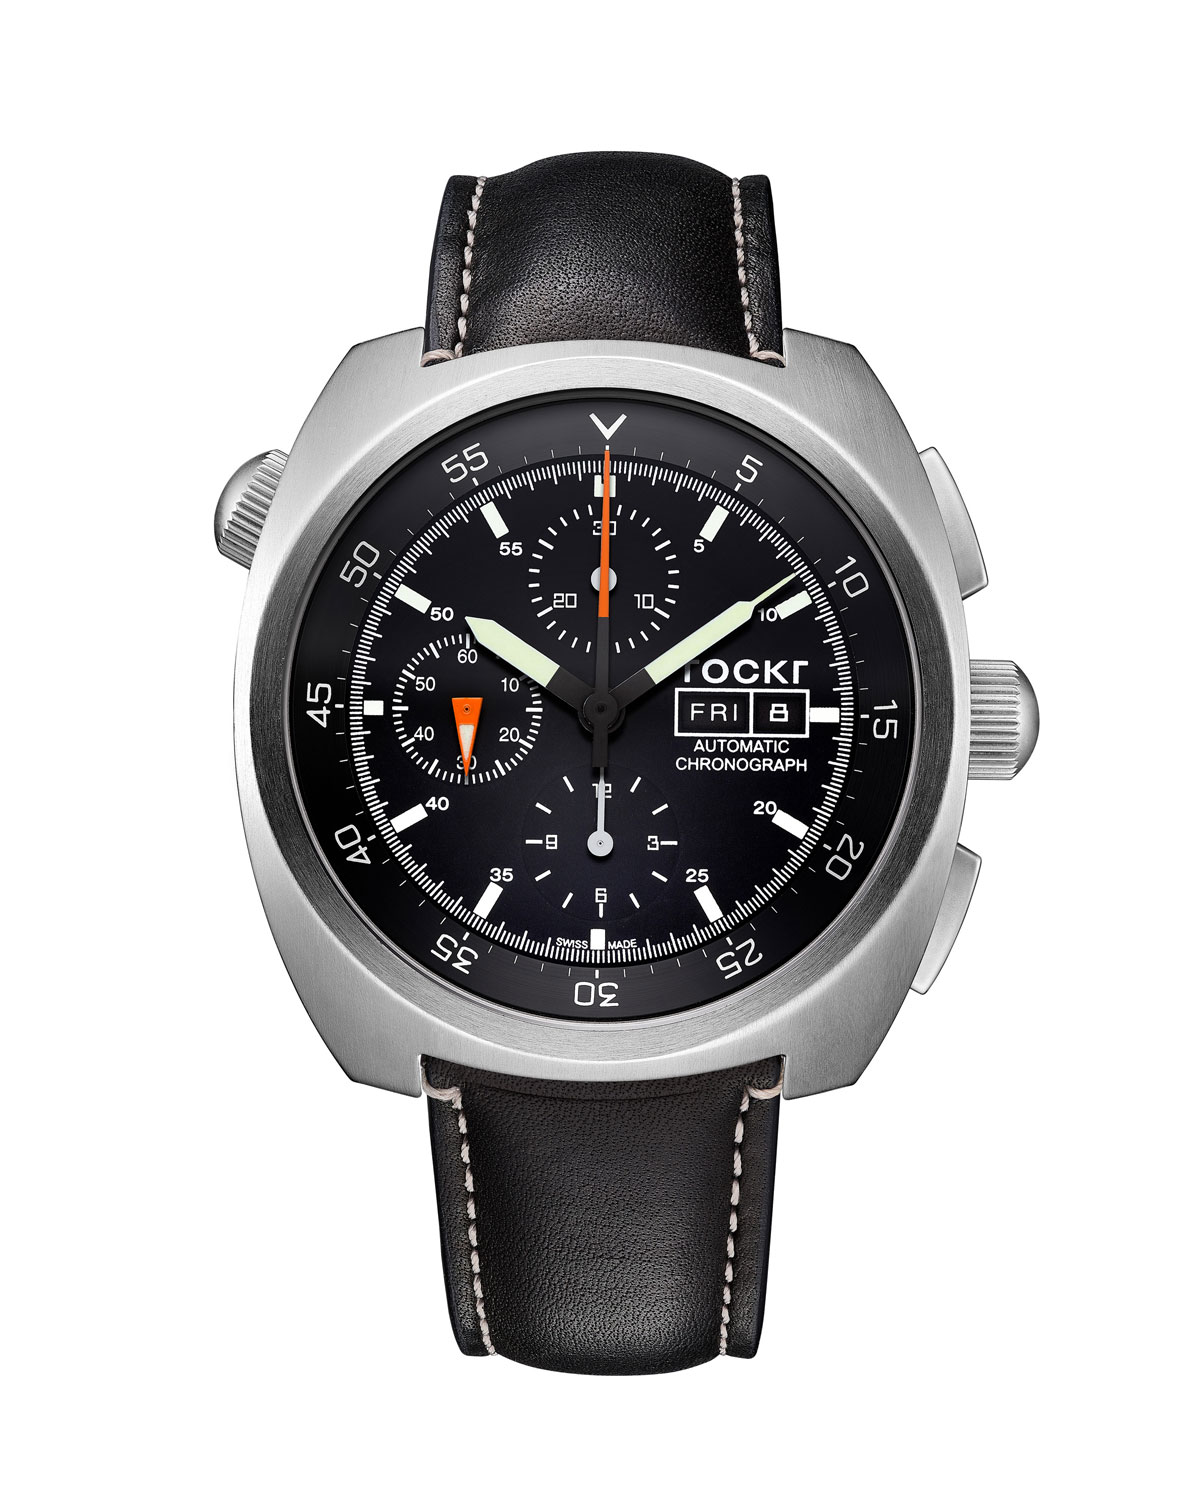 Tockr Watches Men's 45mm Air Defender Chronograph Watch